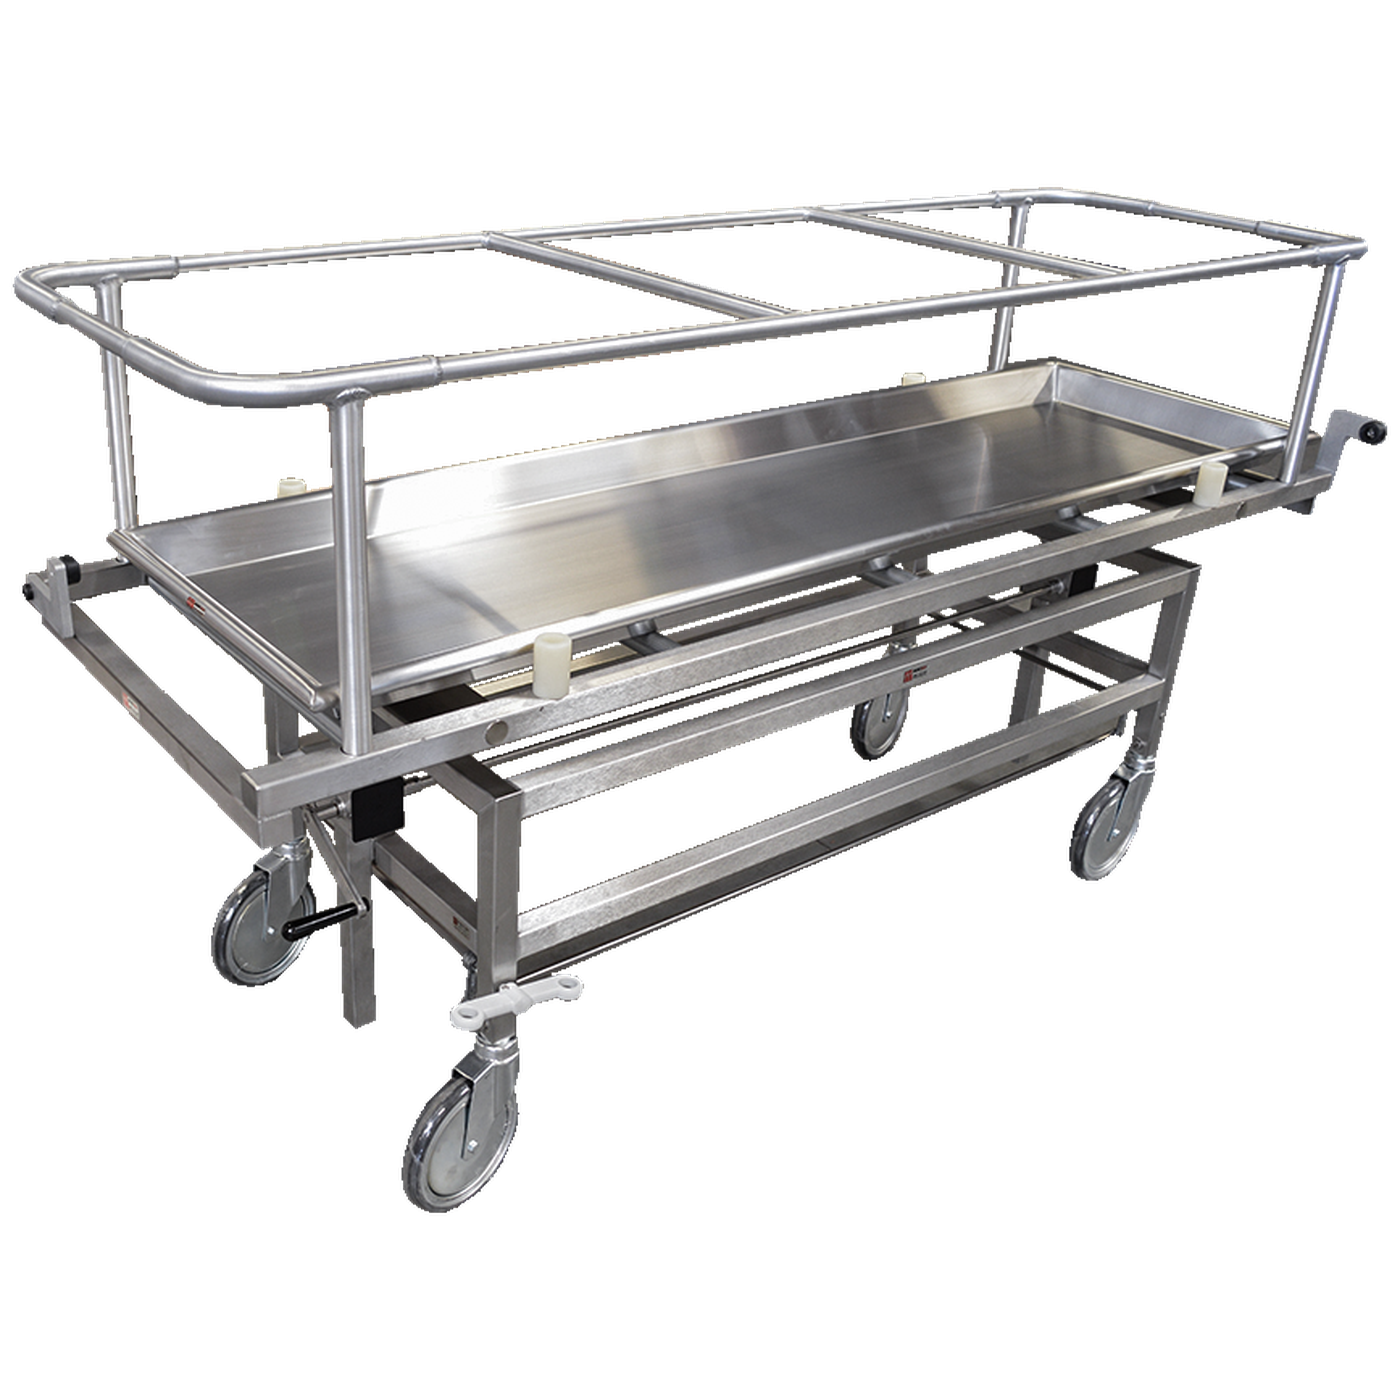 Covered Cadaver Carrier with Hand Crank and Total Wheel Lock-Body Transporter-Mortech Manufacturing Company Inc. Quality Stainless Steel Autopsy, Morgue, Funeral Home, Necropsy, Veterinary / Anatomy, Dissection Equipment and Accessories